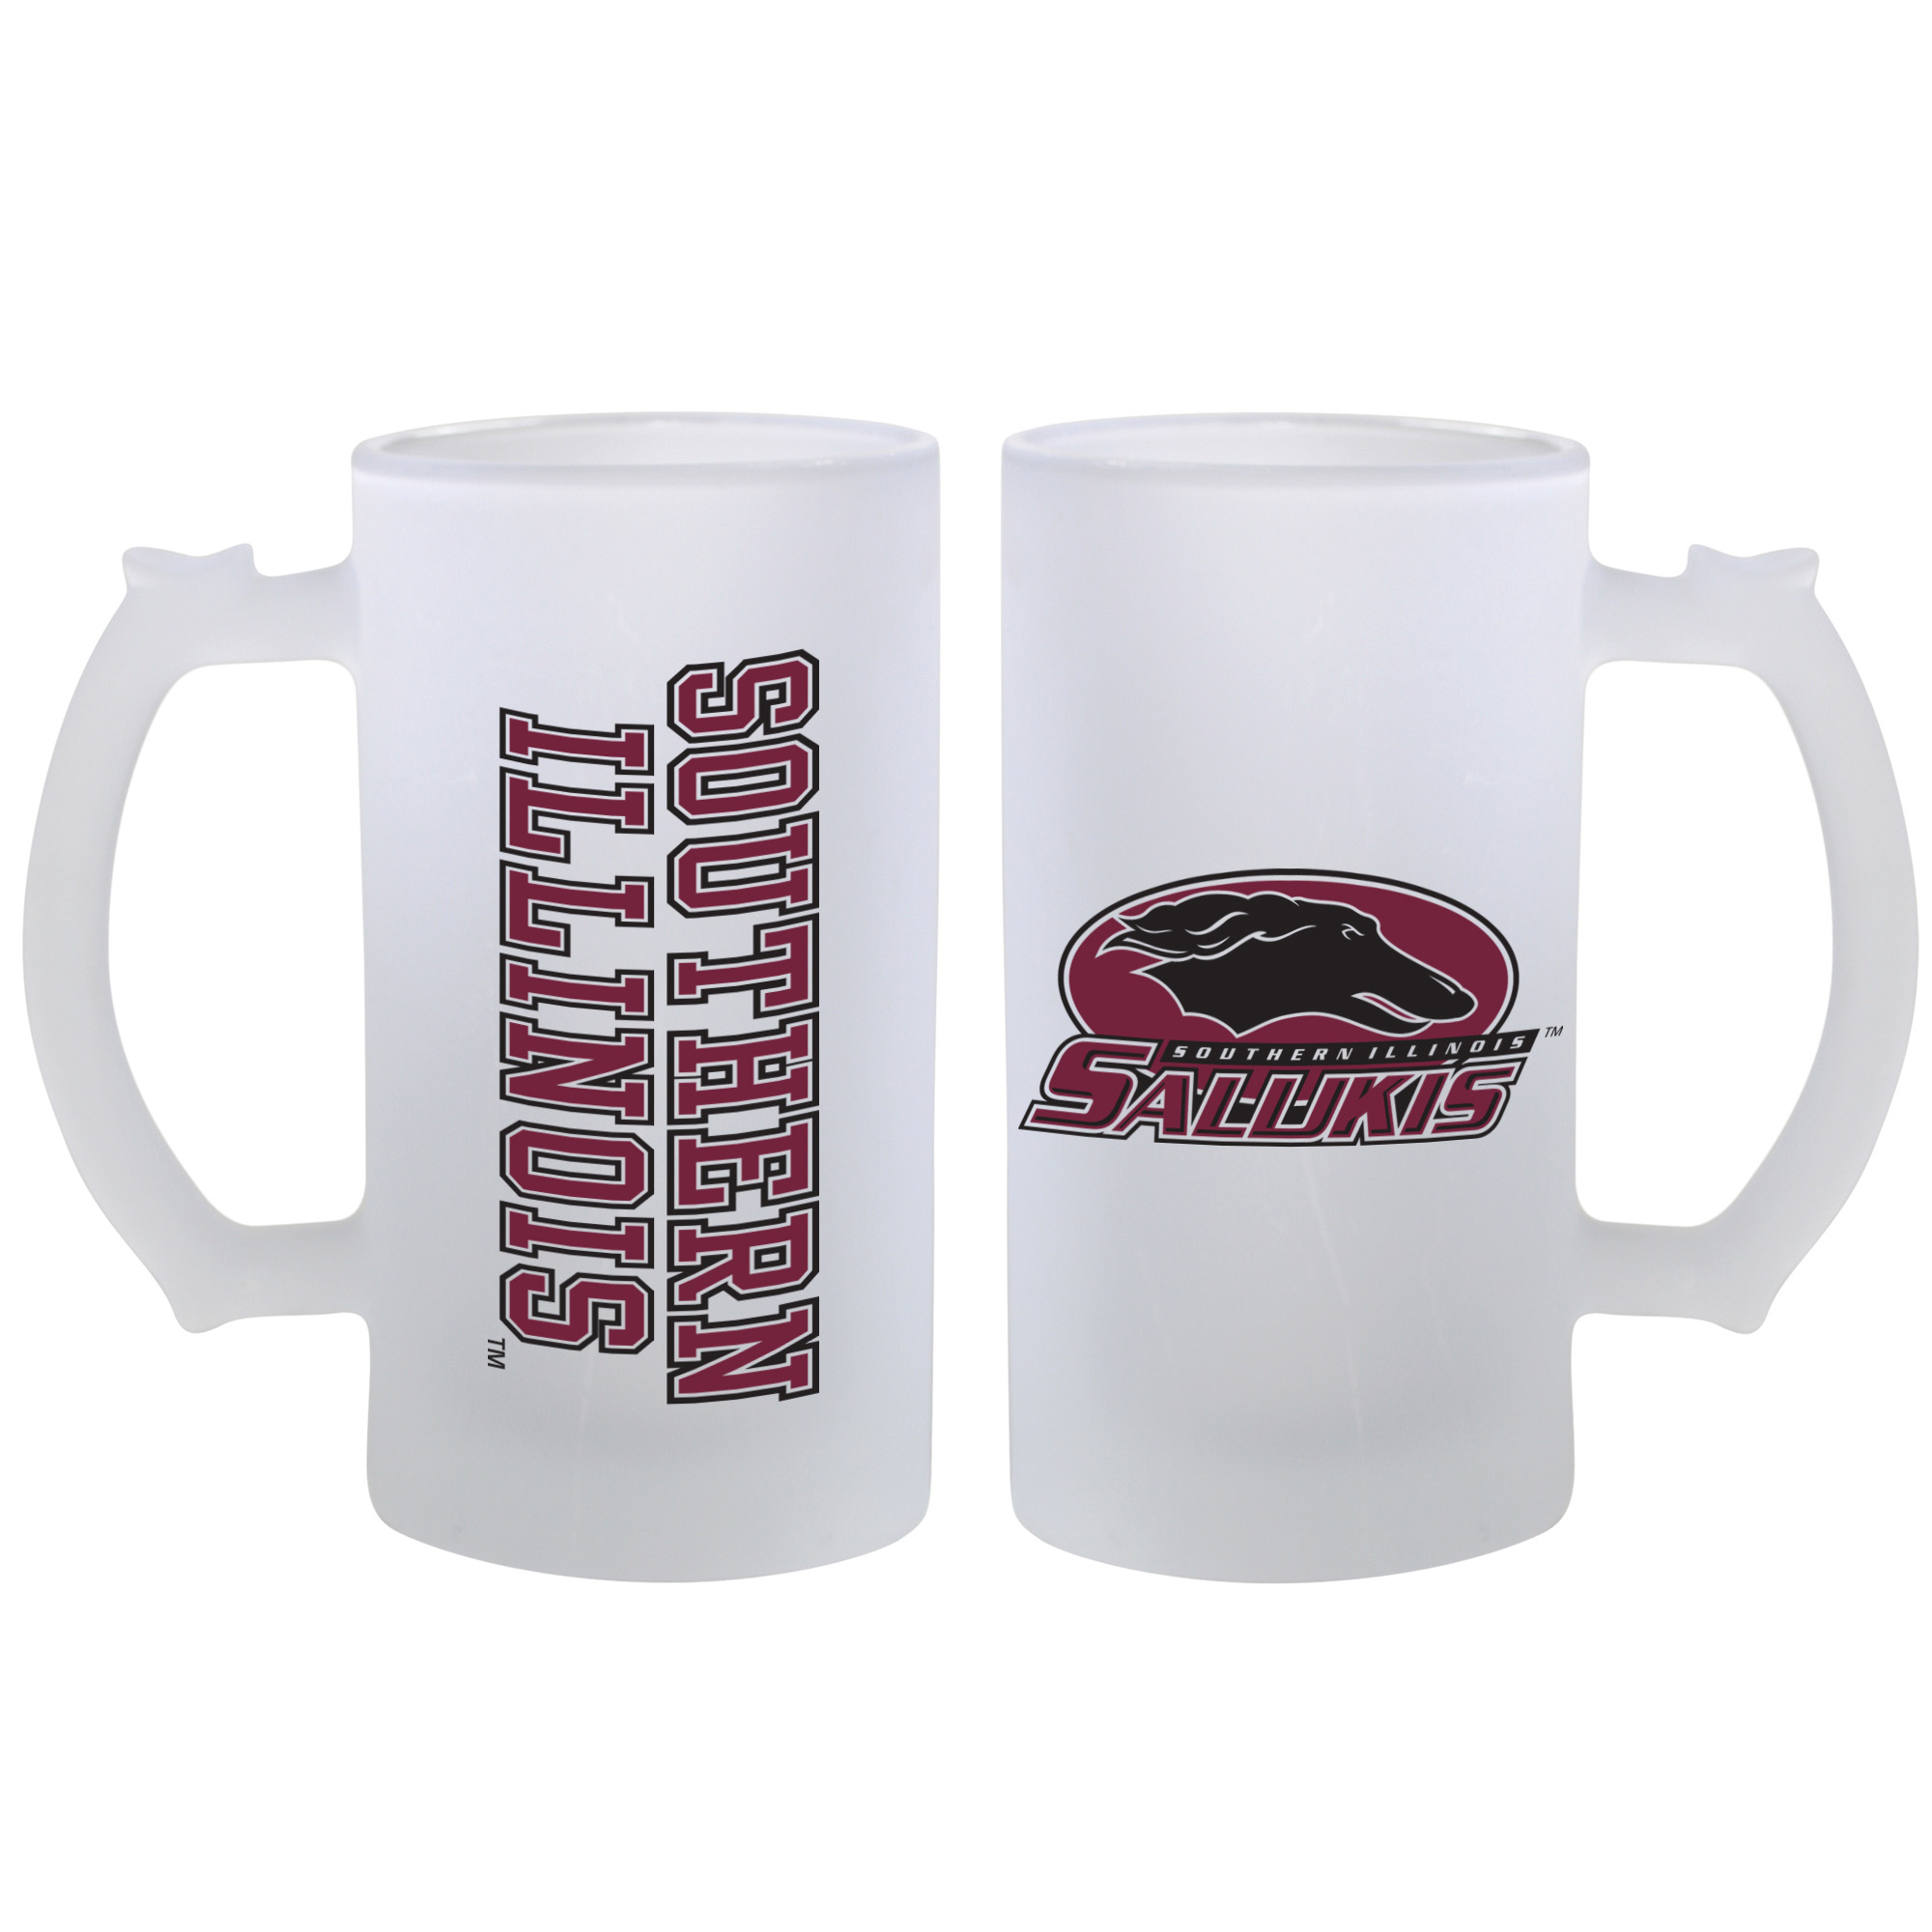 Image for the SPIRIT PRODUCTS® SOUTHERN ILLINOIS FROSTED MUG WITH HANDLE product